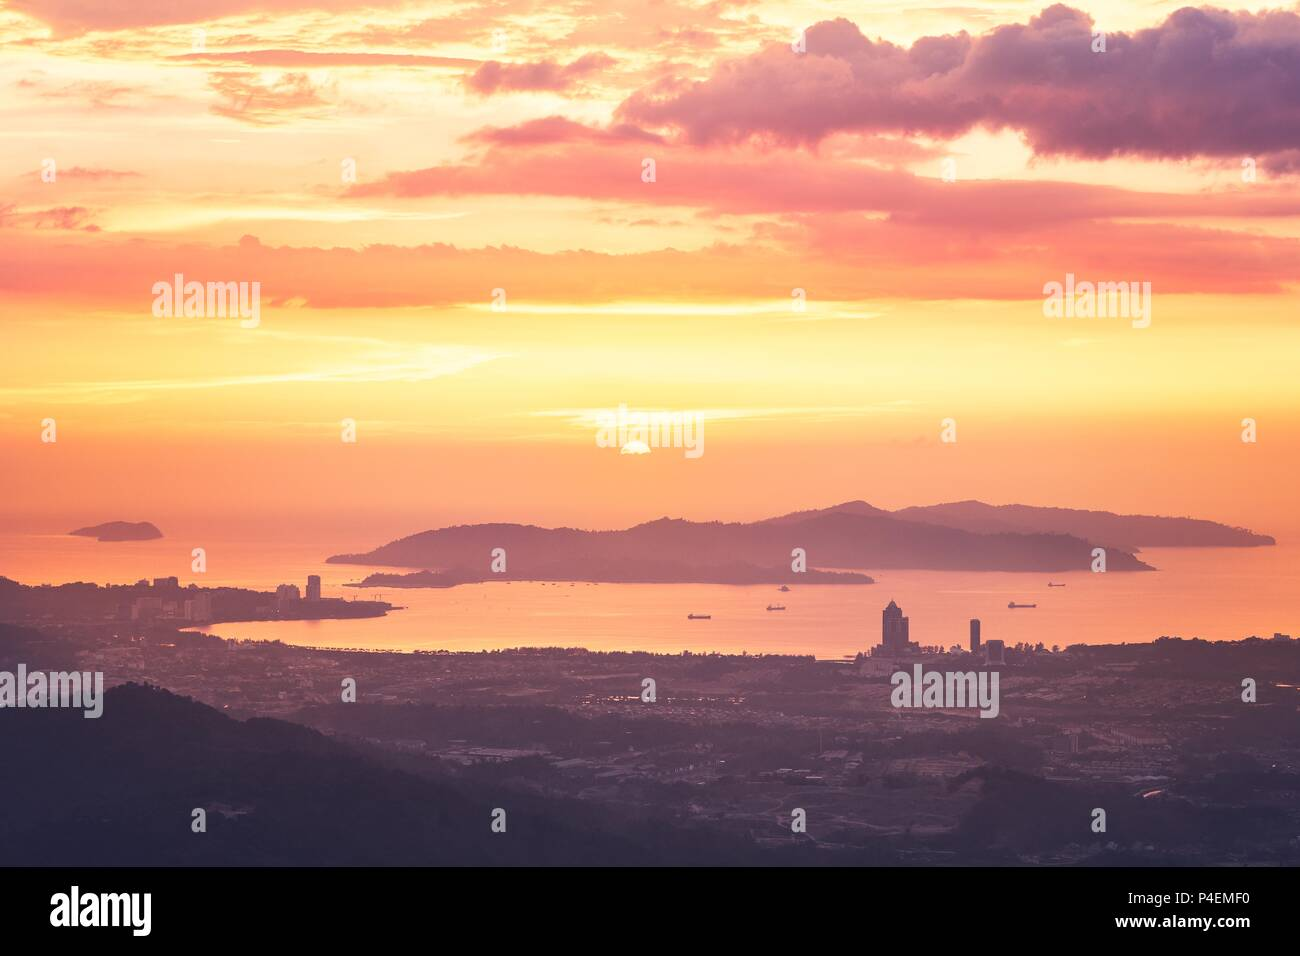 View of silhouette landscape with Kota Kinabalu city against islands at golden sunset.  Sabah state, Malaysia. - Stock Image